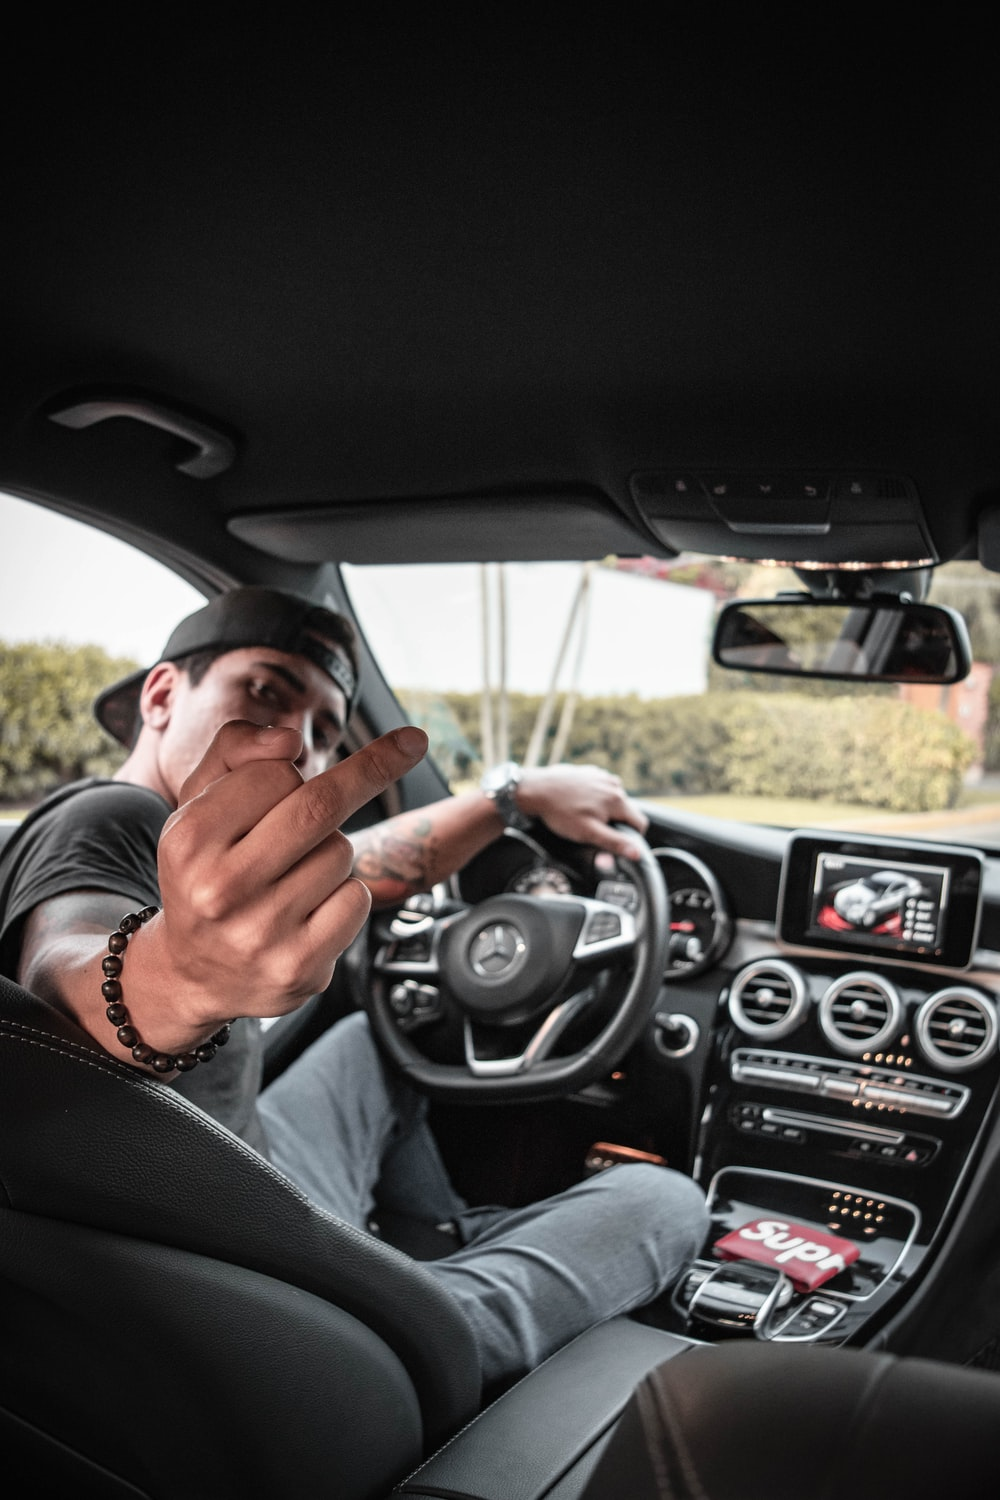 man behind car steering wheel showing his right middle finger